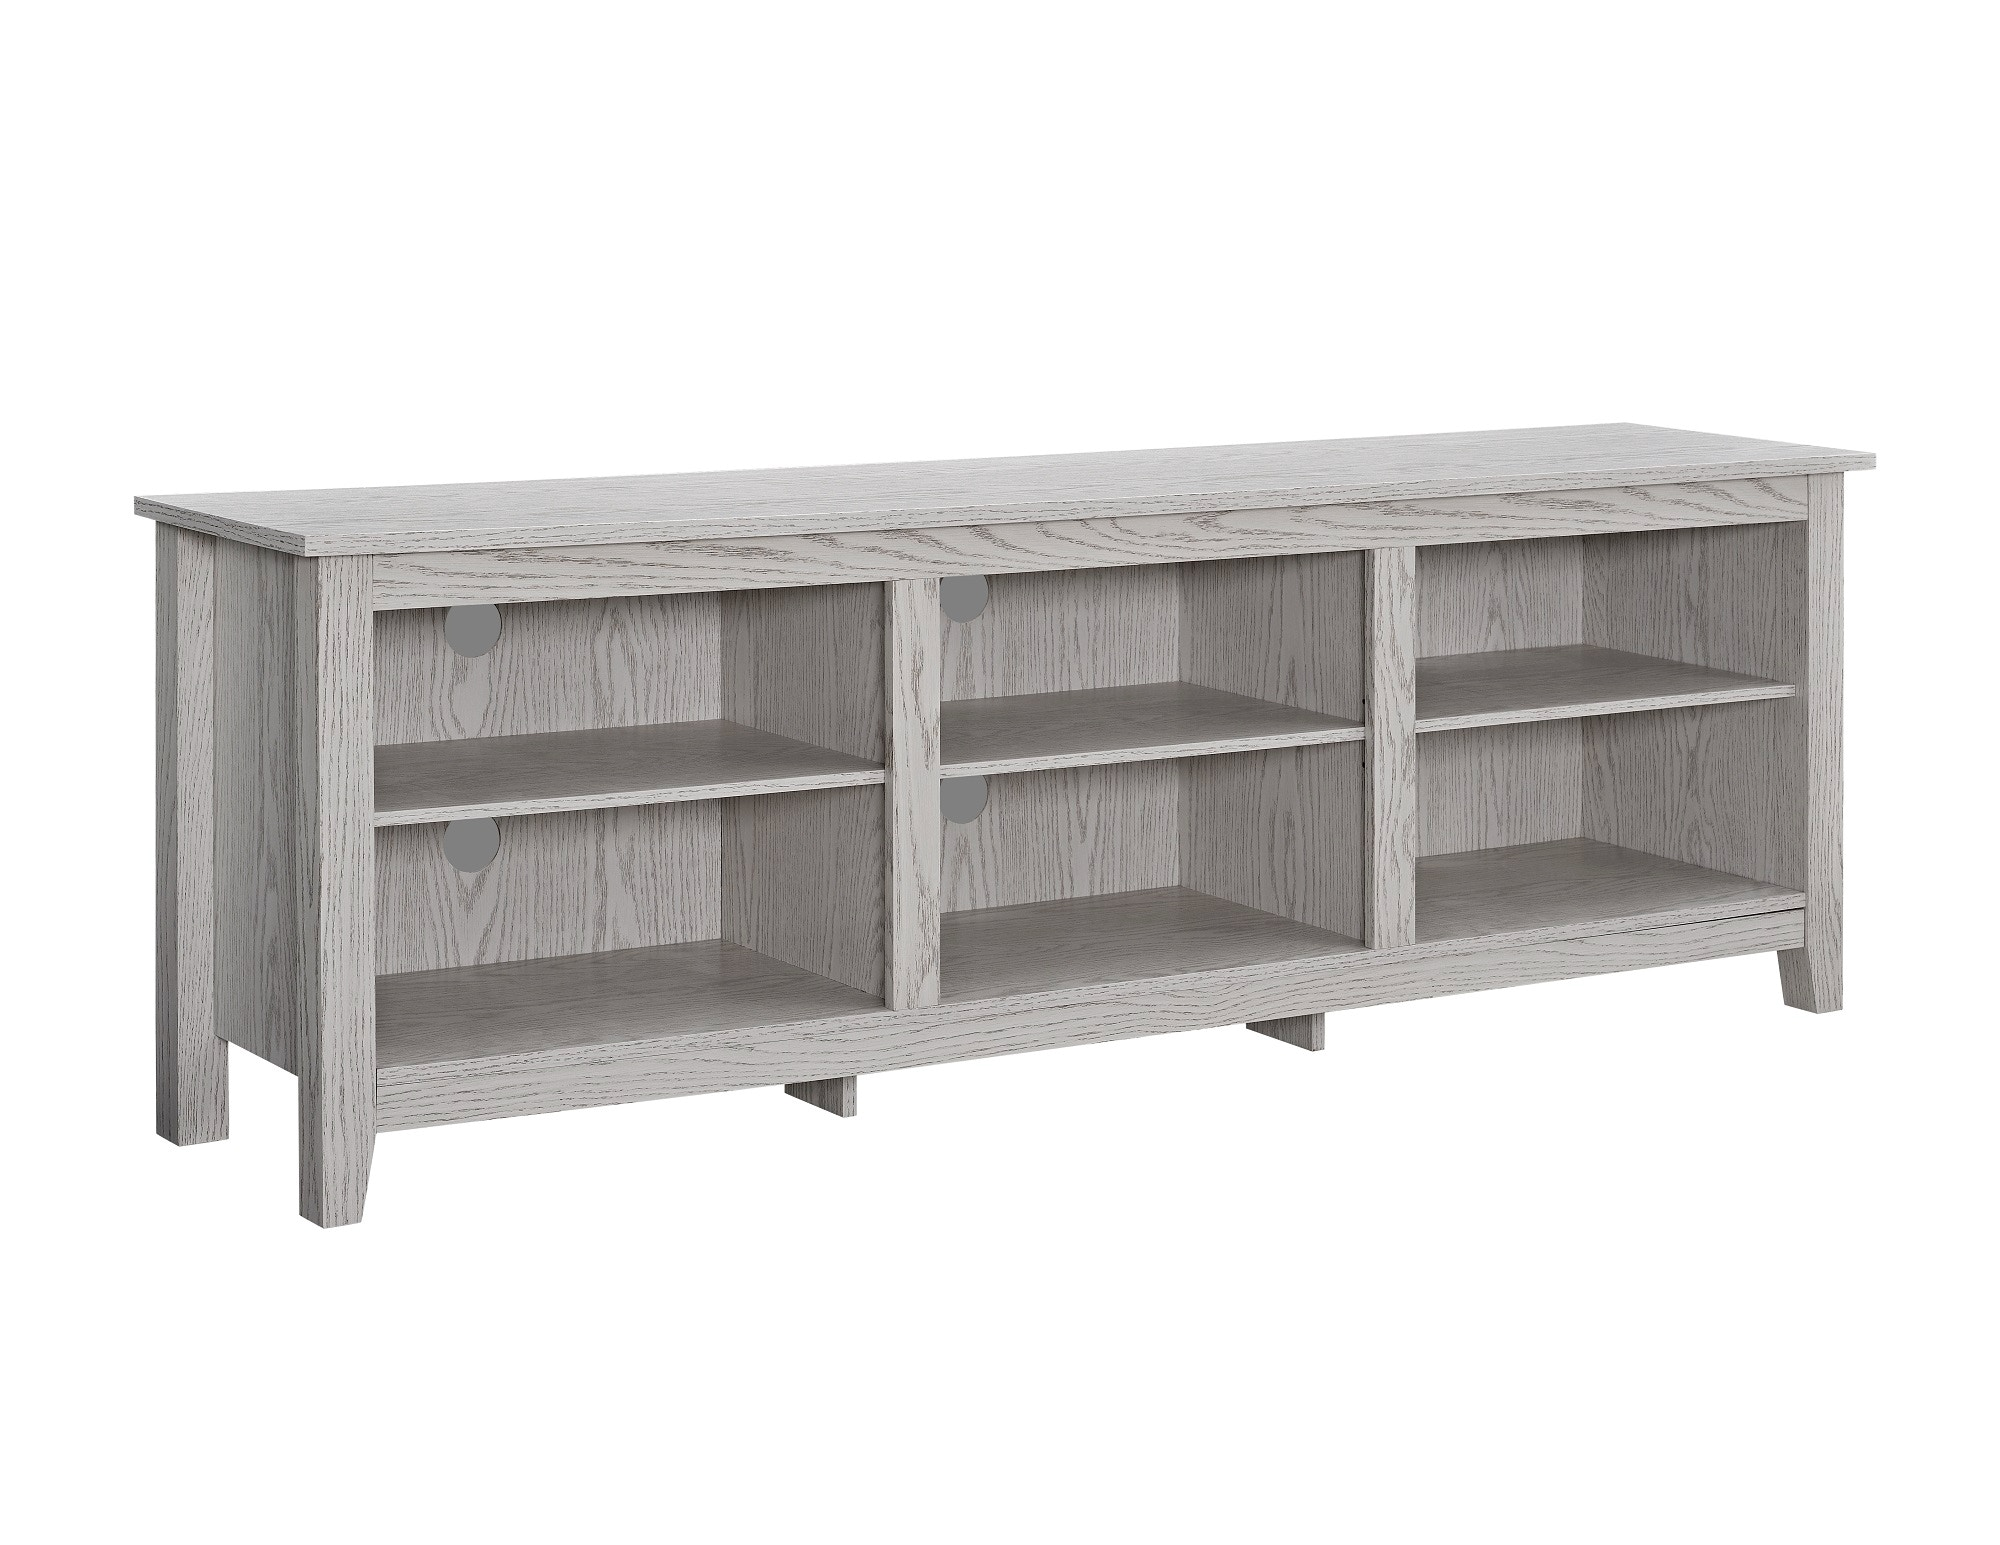 Superbe Ft Myers 70u0027u0027 Wood Media TV Stand Storage Console WEDW70CSPWW From Walter E.